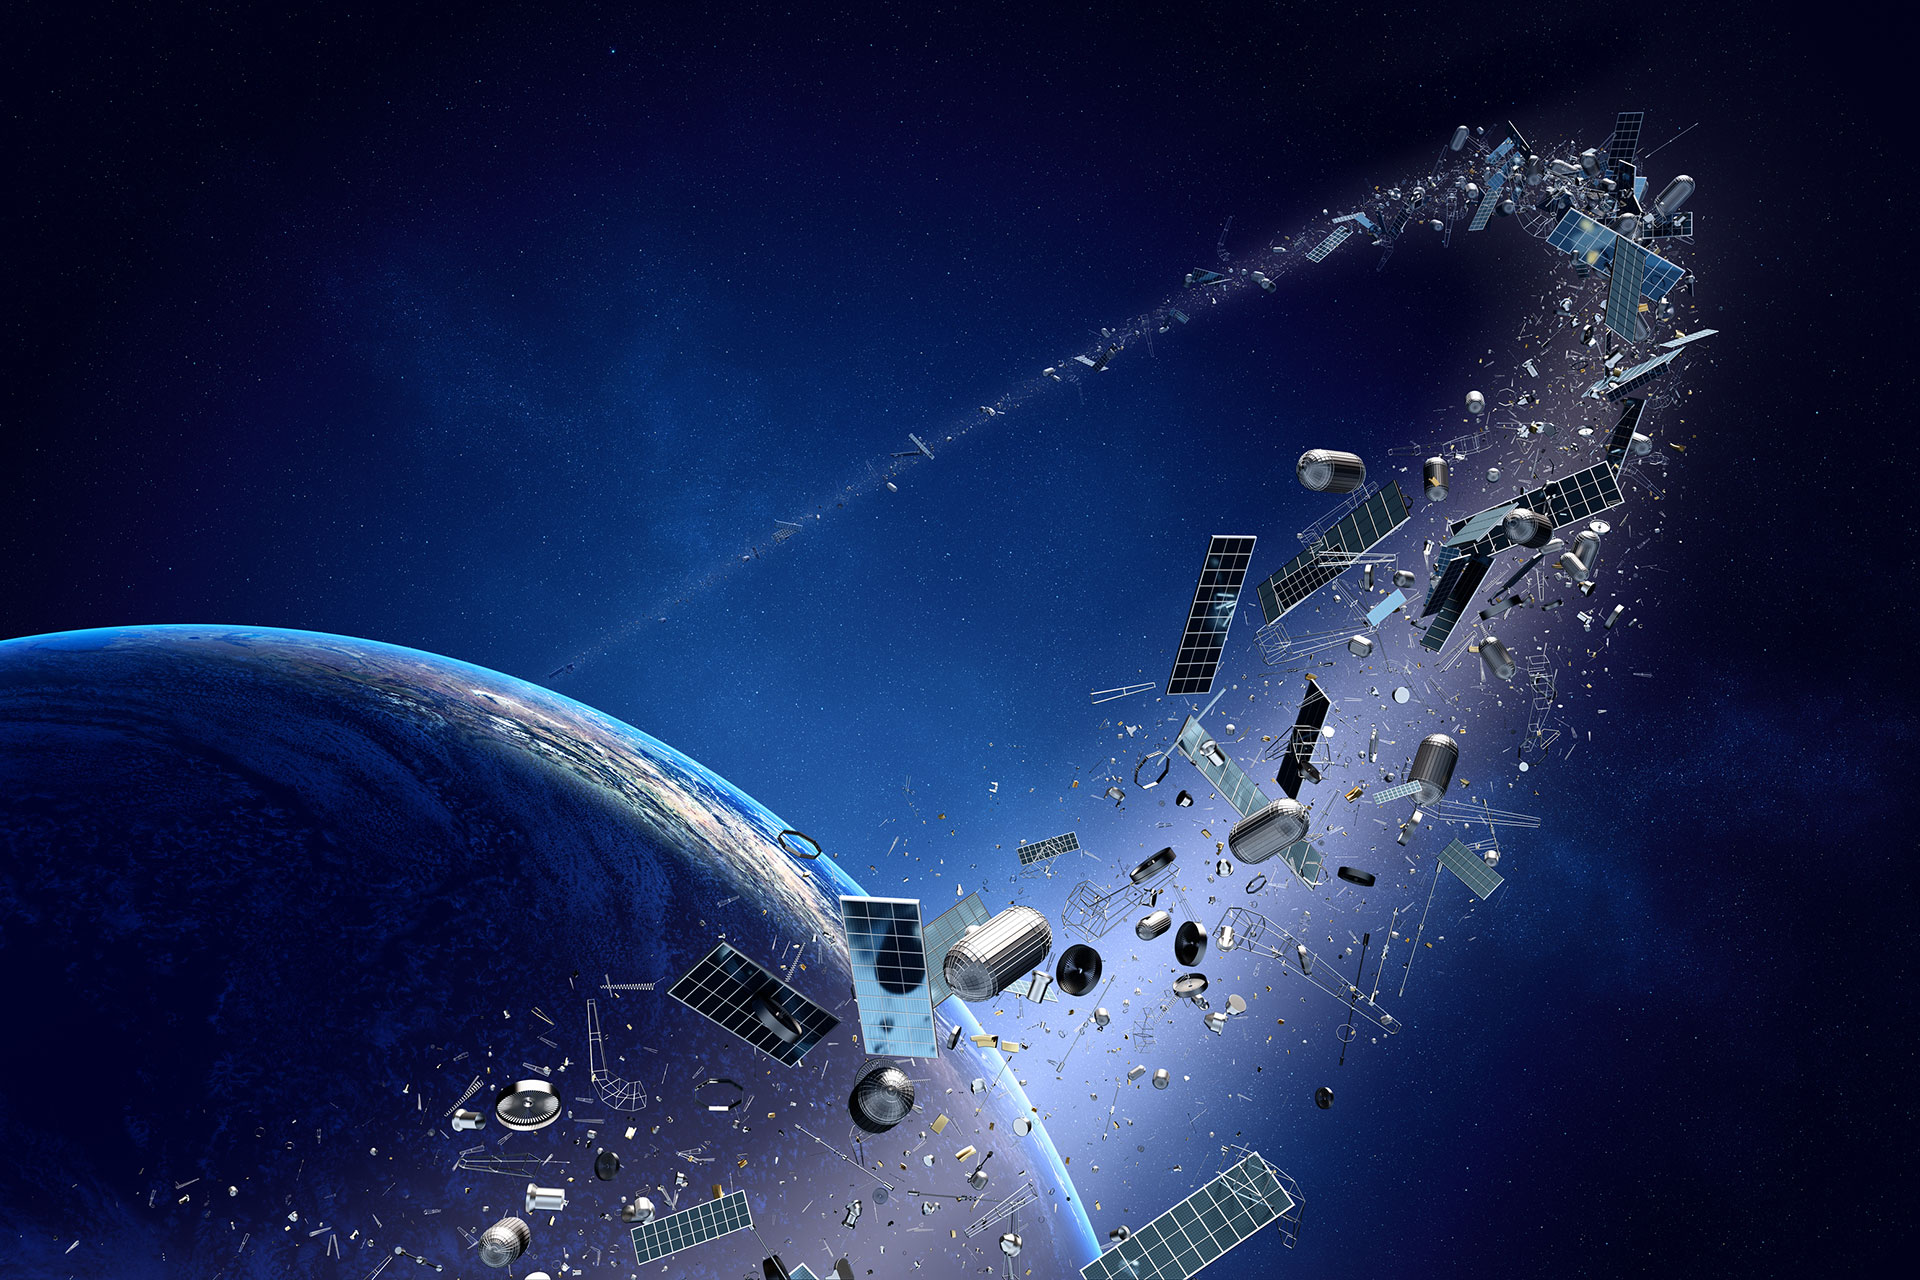 How safe are we from falling satellites or space junk?